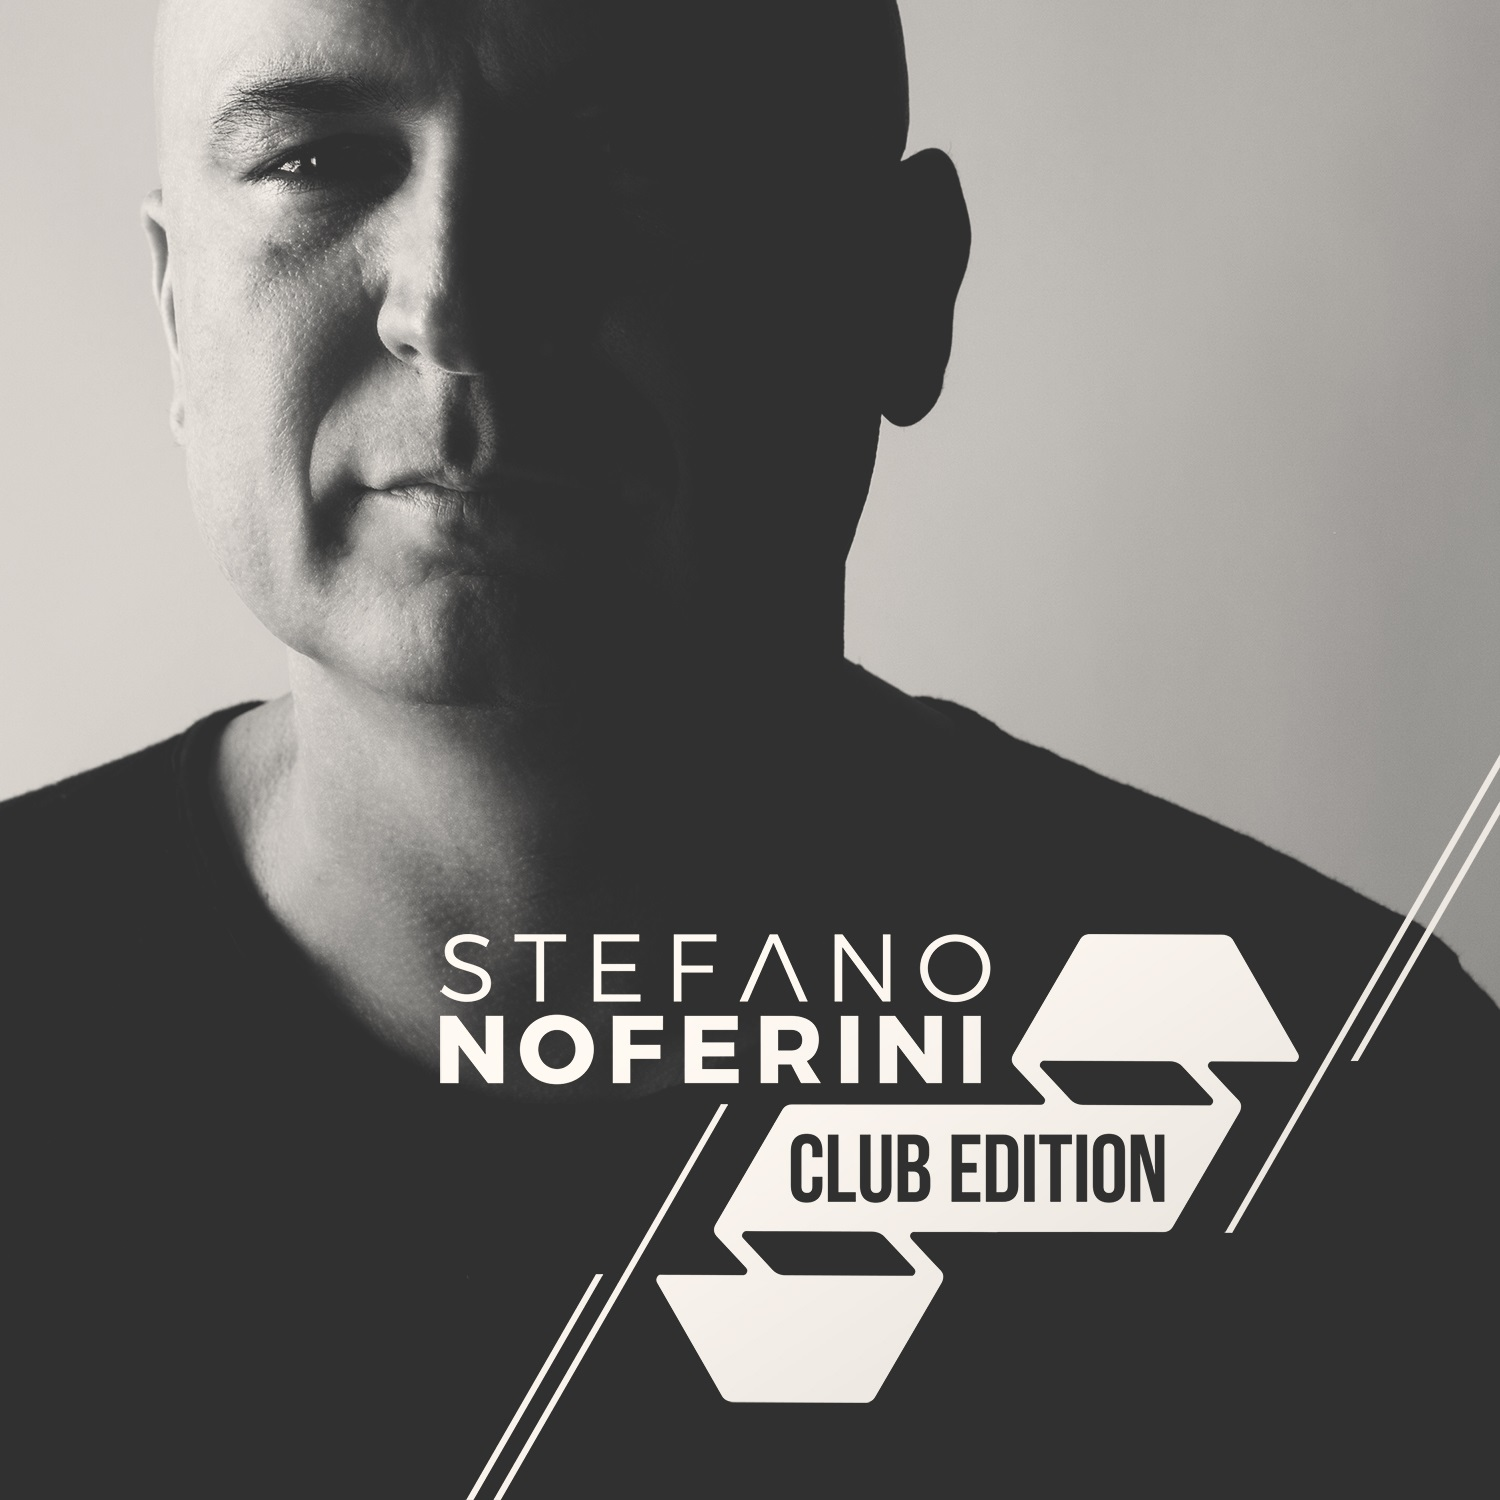 Delta Podcasts - Club Edition by Stefano Noferini (28.06.2018)